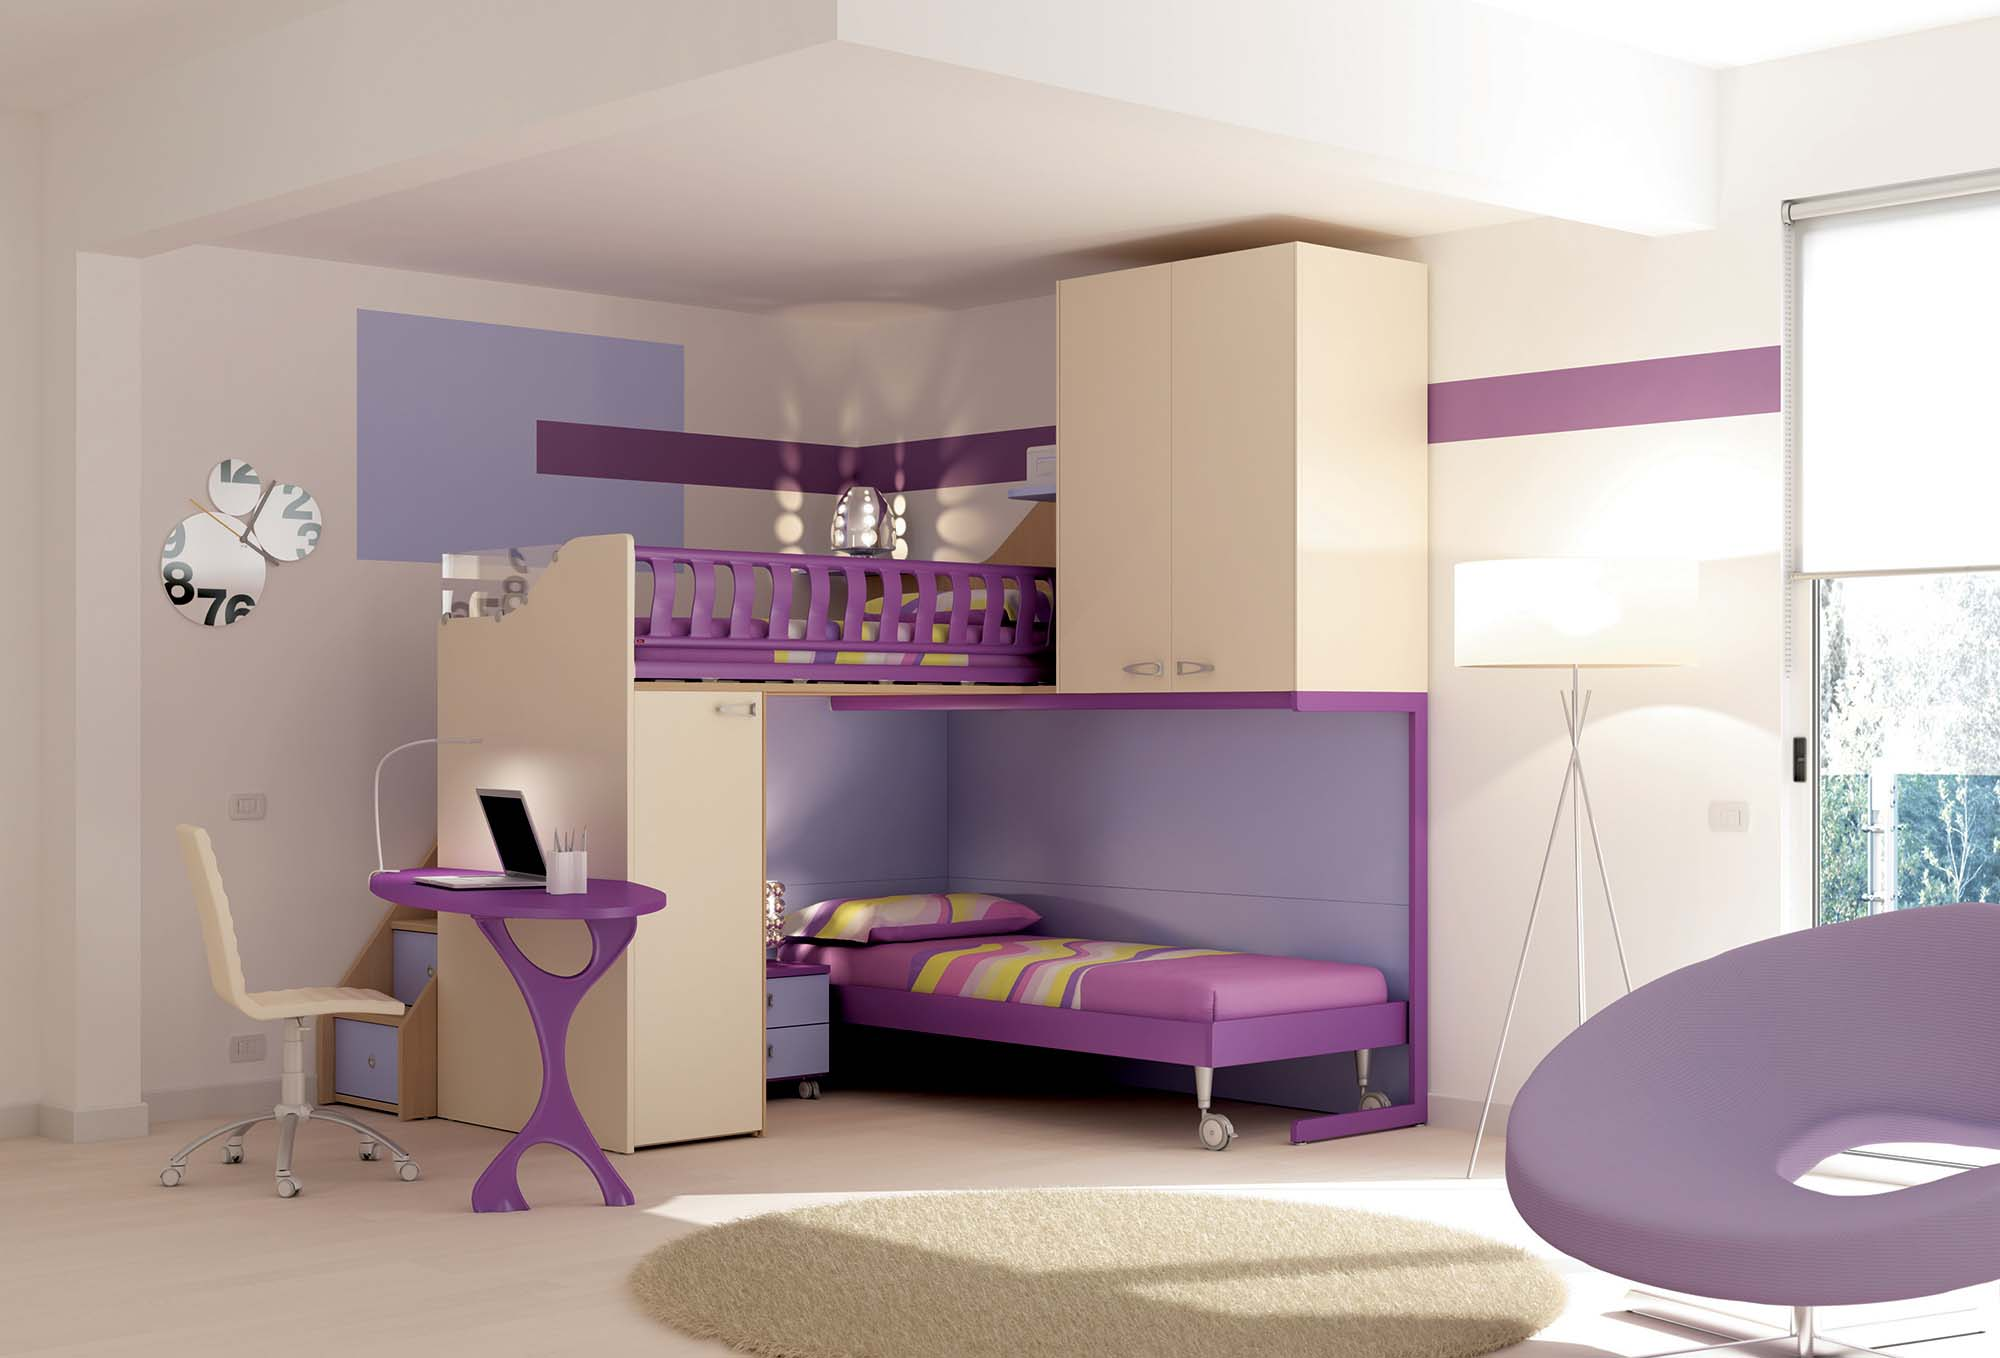 mezzanine chambre enfant 13 chambre enfant lit. Black Bedroom Furniture Sets. Home Design Ideas